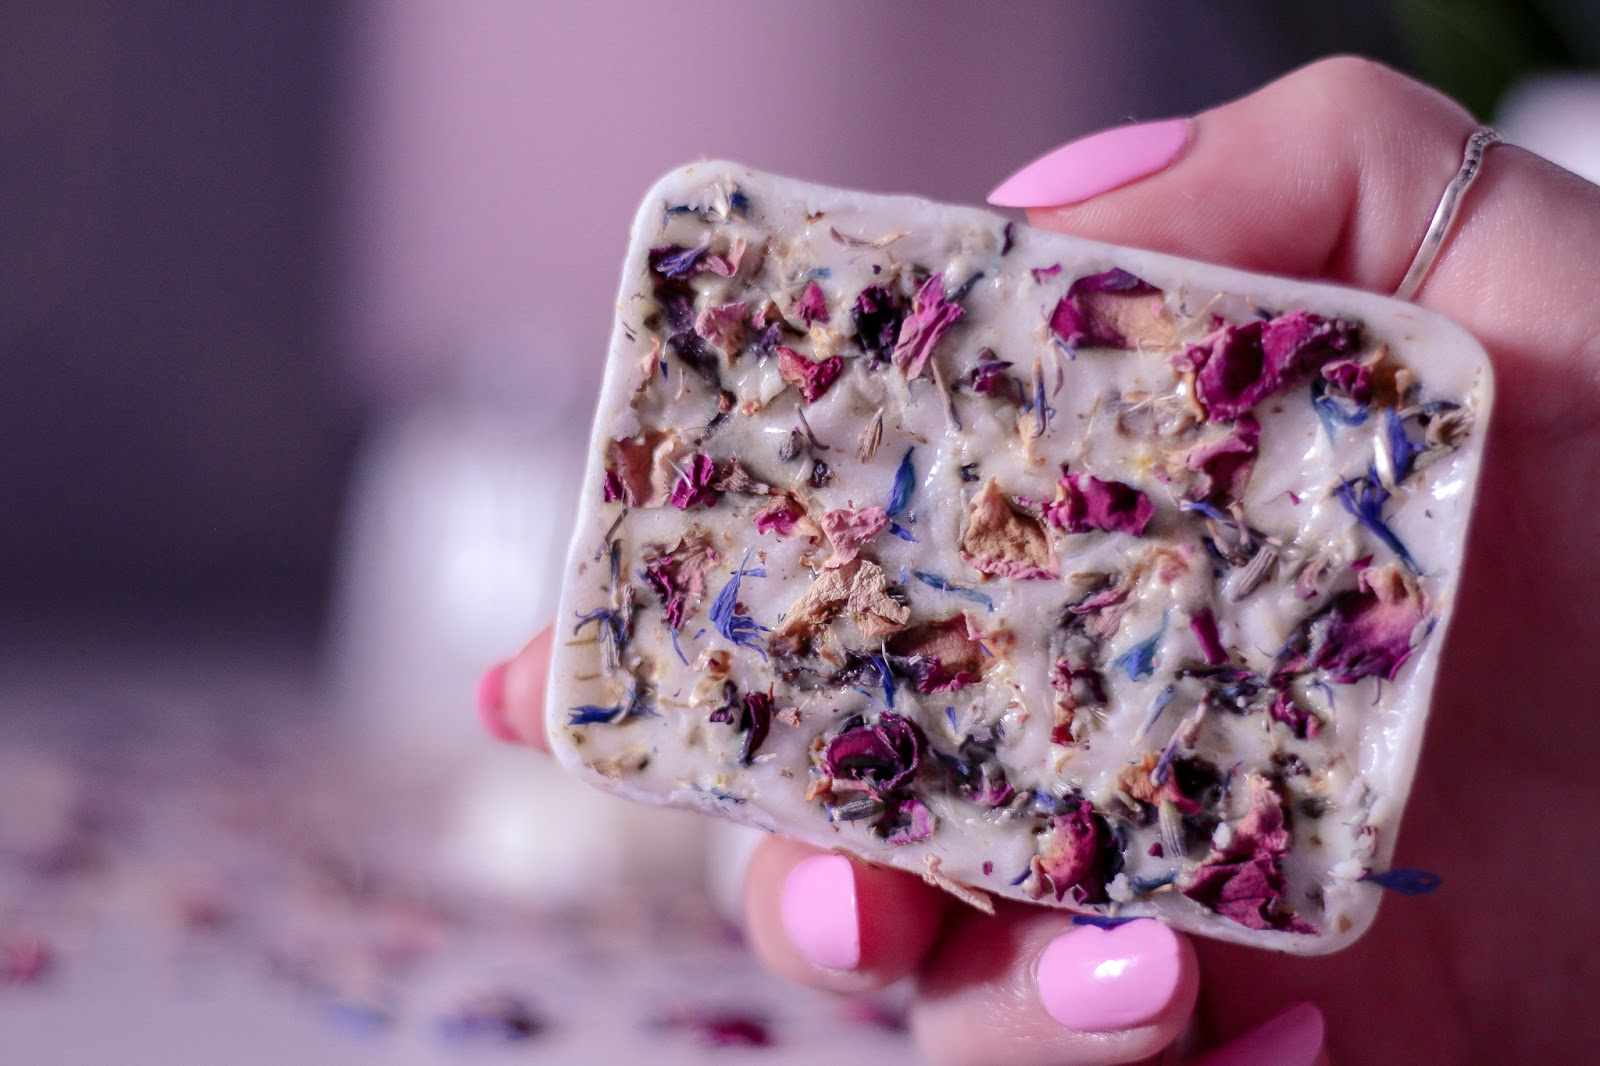 Close up photo of Ofaglasgowgirl holding the white beauty bar with pink rose petals in it